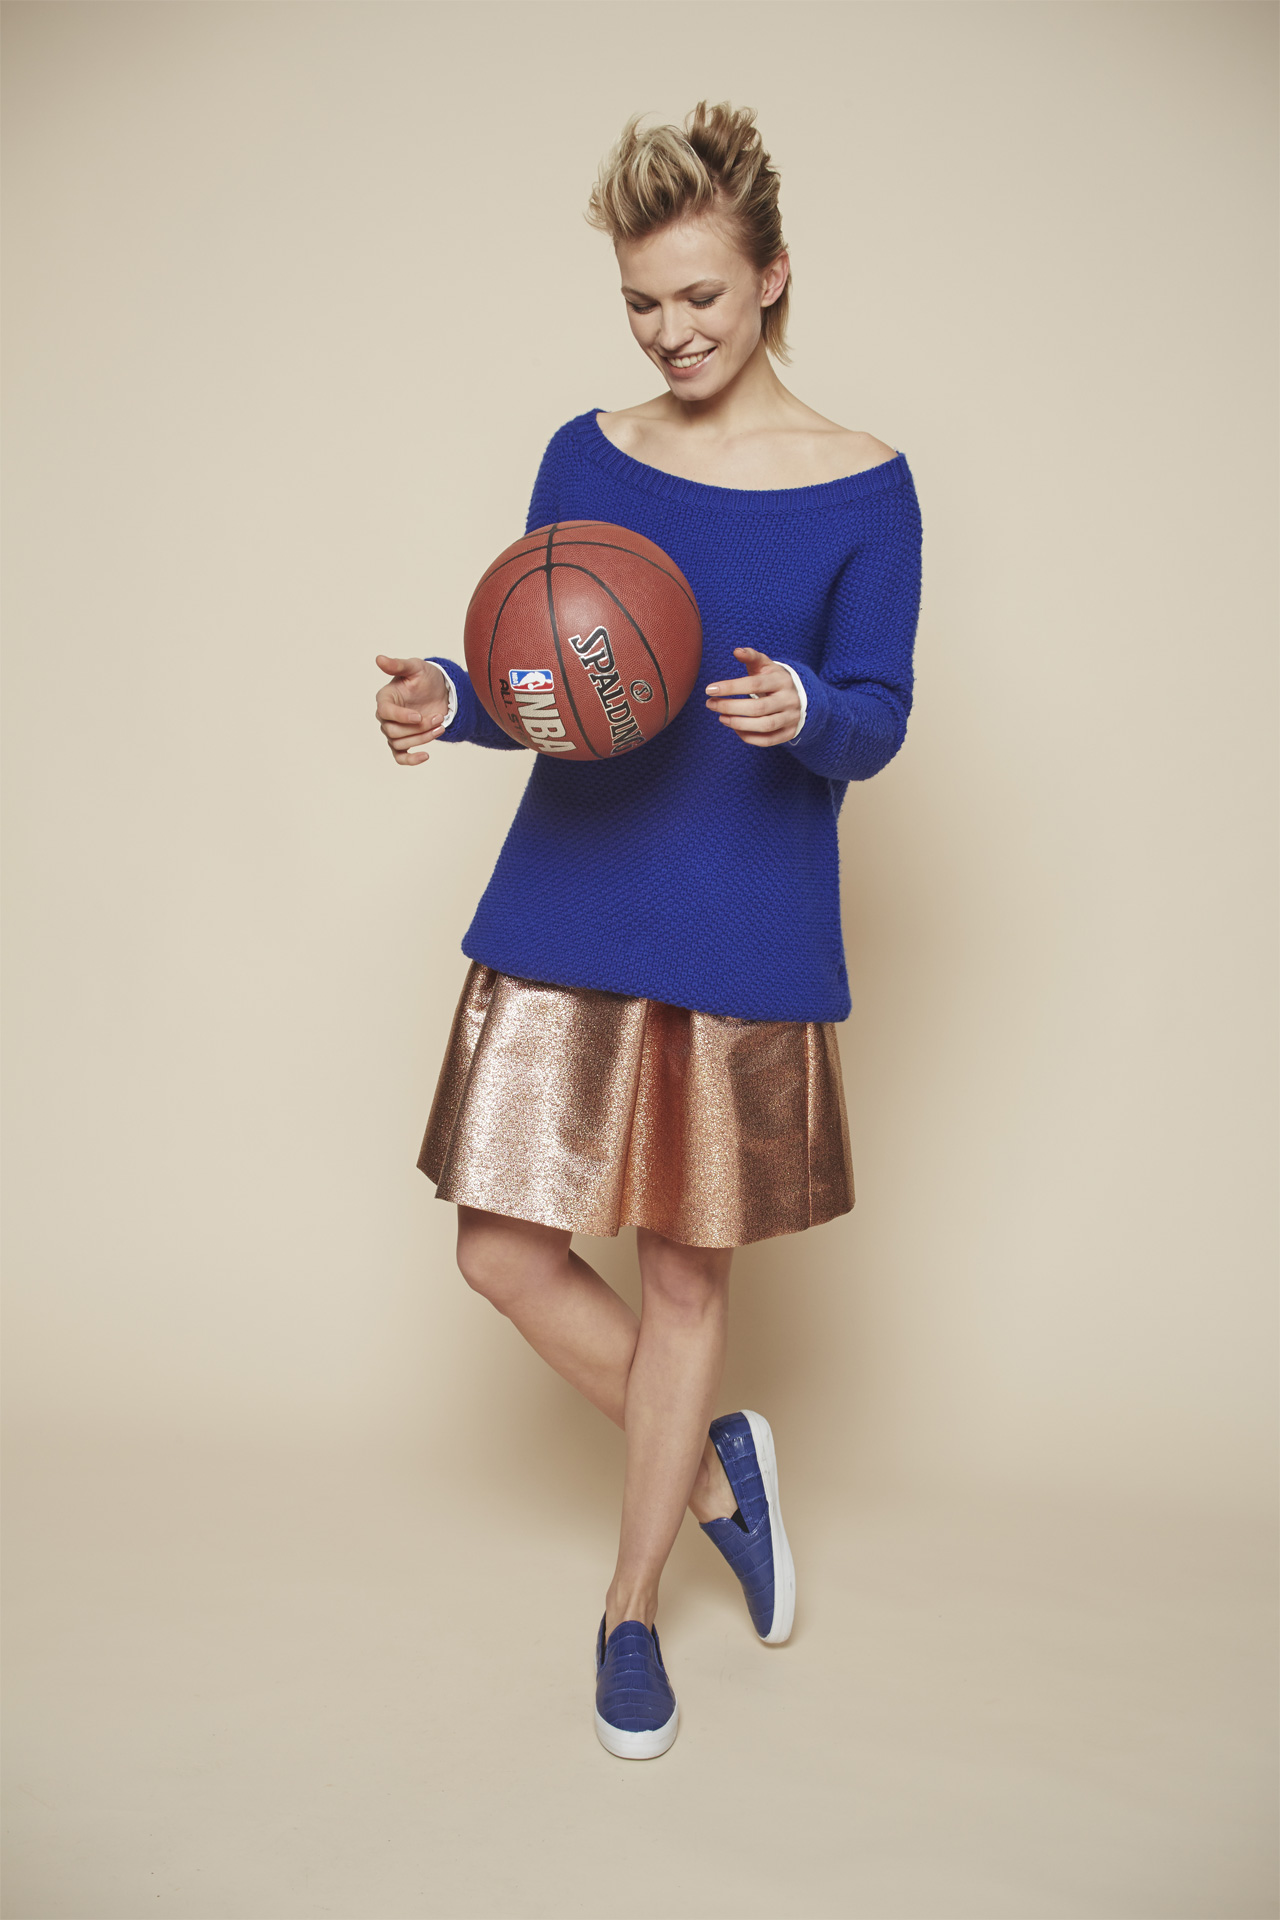 Autumn Winter 2015/16 Collection: Article Silvestro round neck 2 - article giove skirt